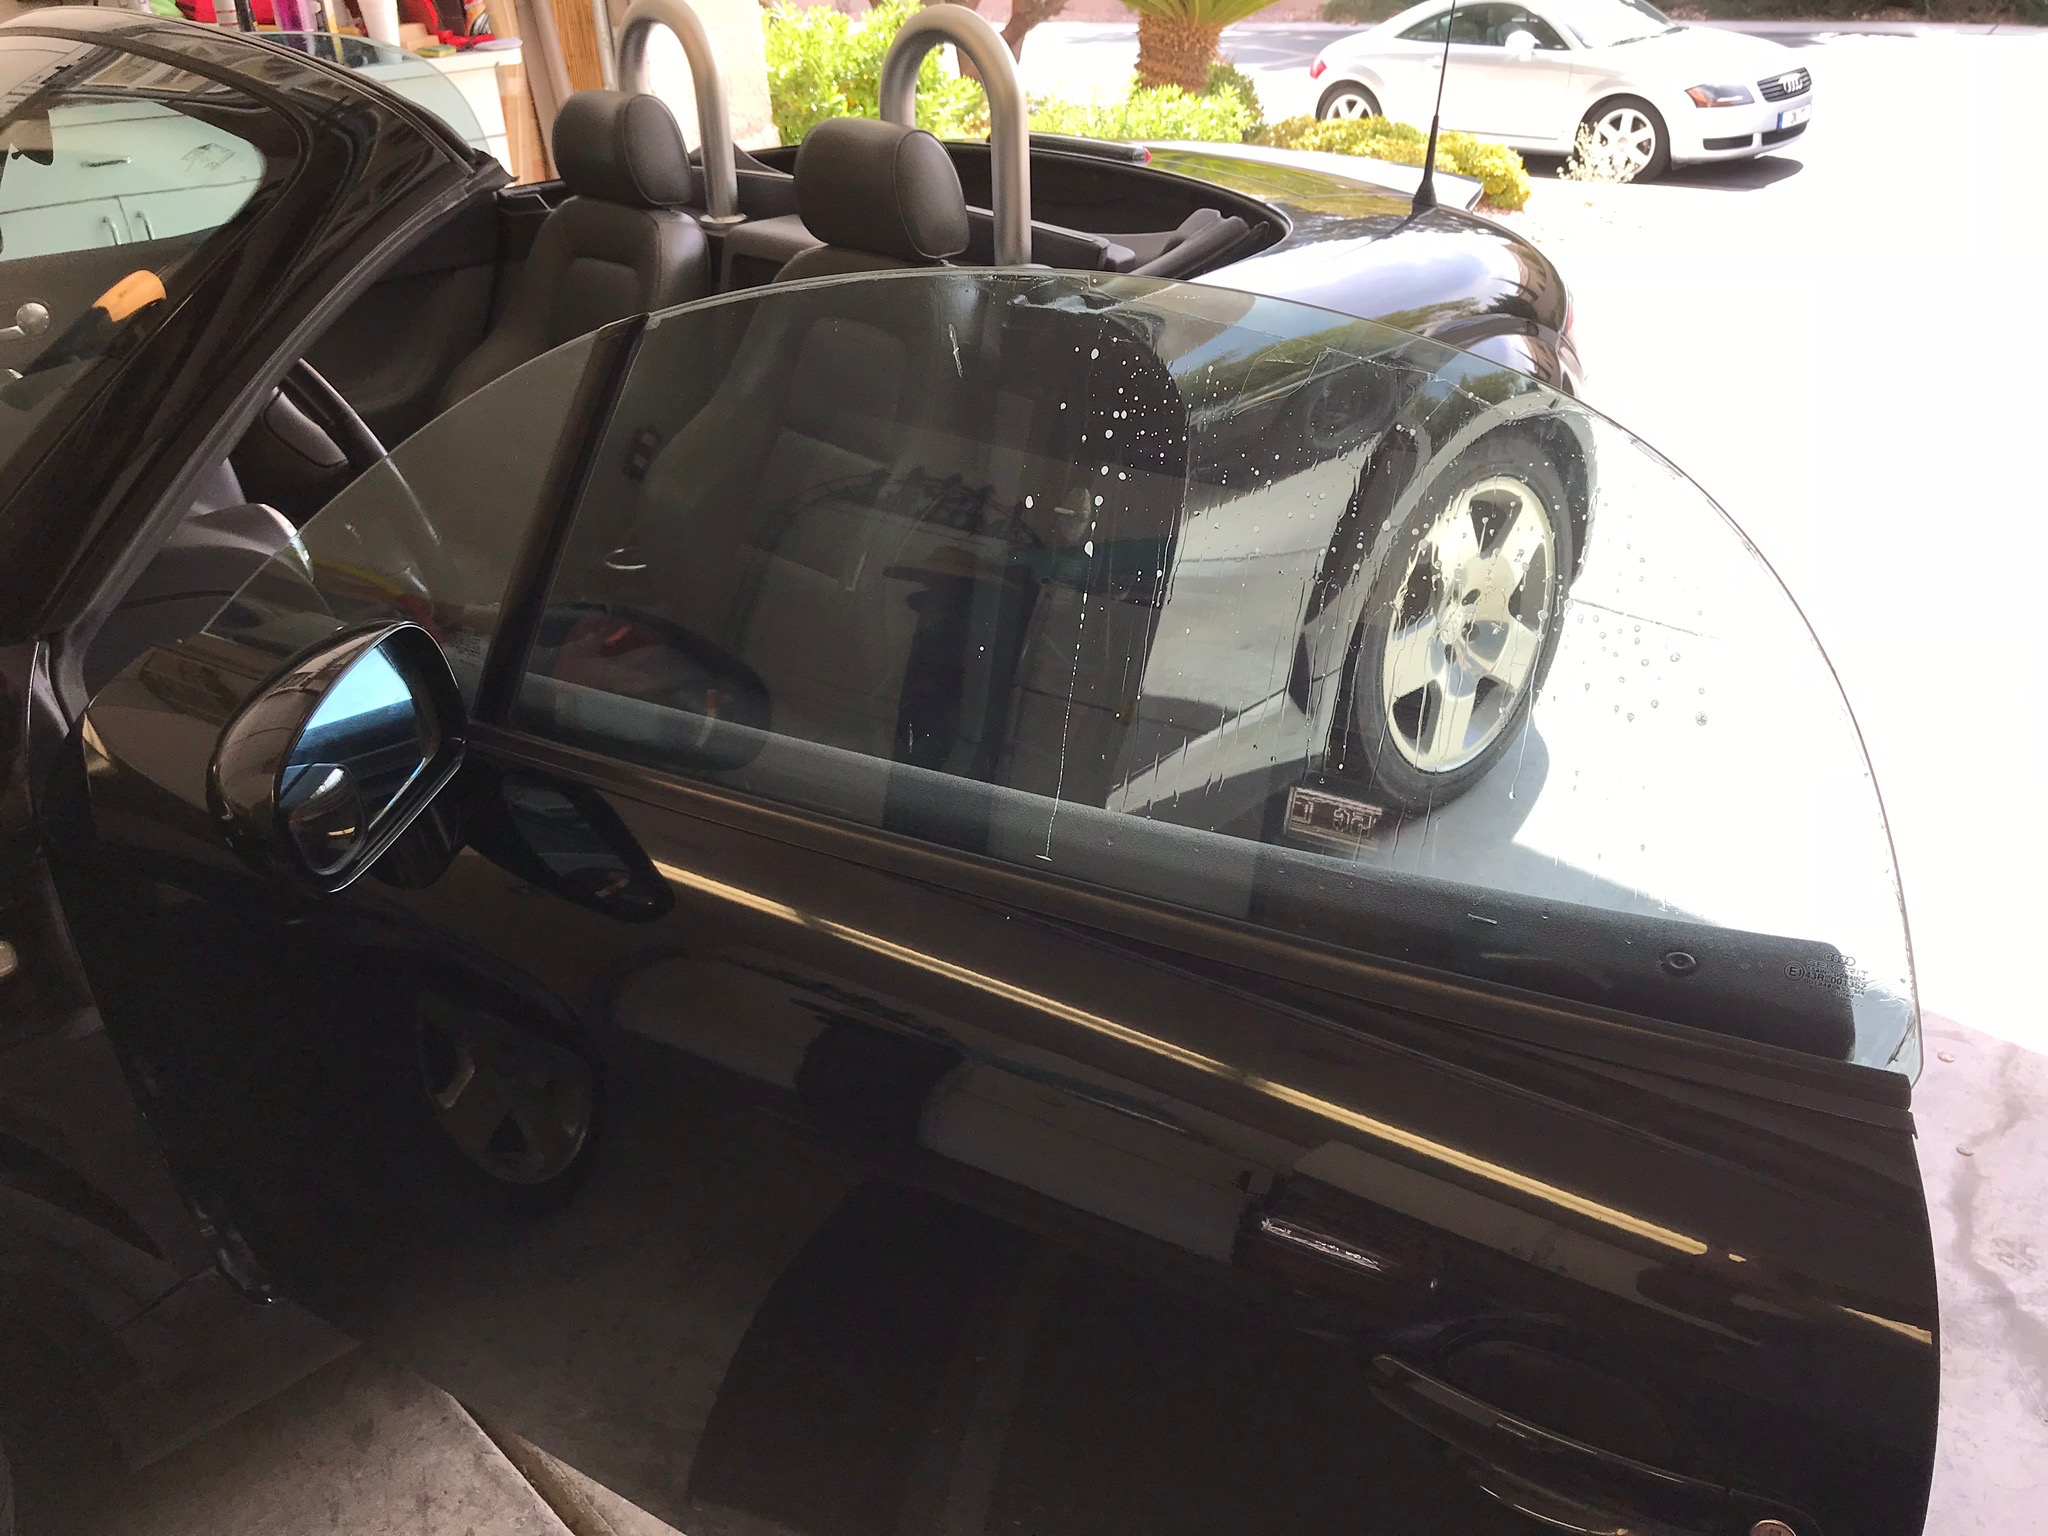 2001 Audi TT Roadster 225 Mk1 Project Car – Las Vegas TT Club